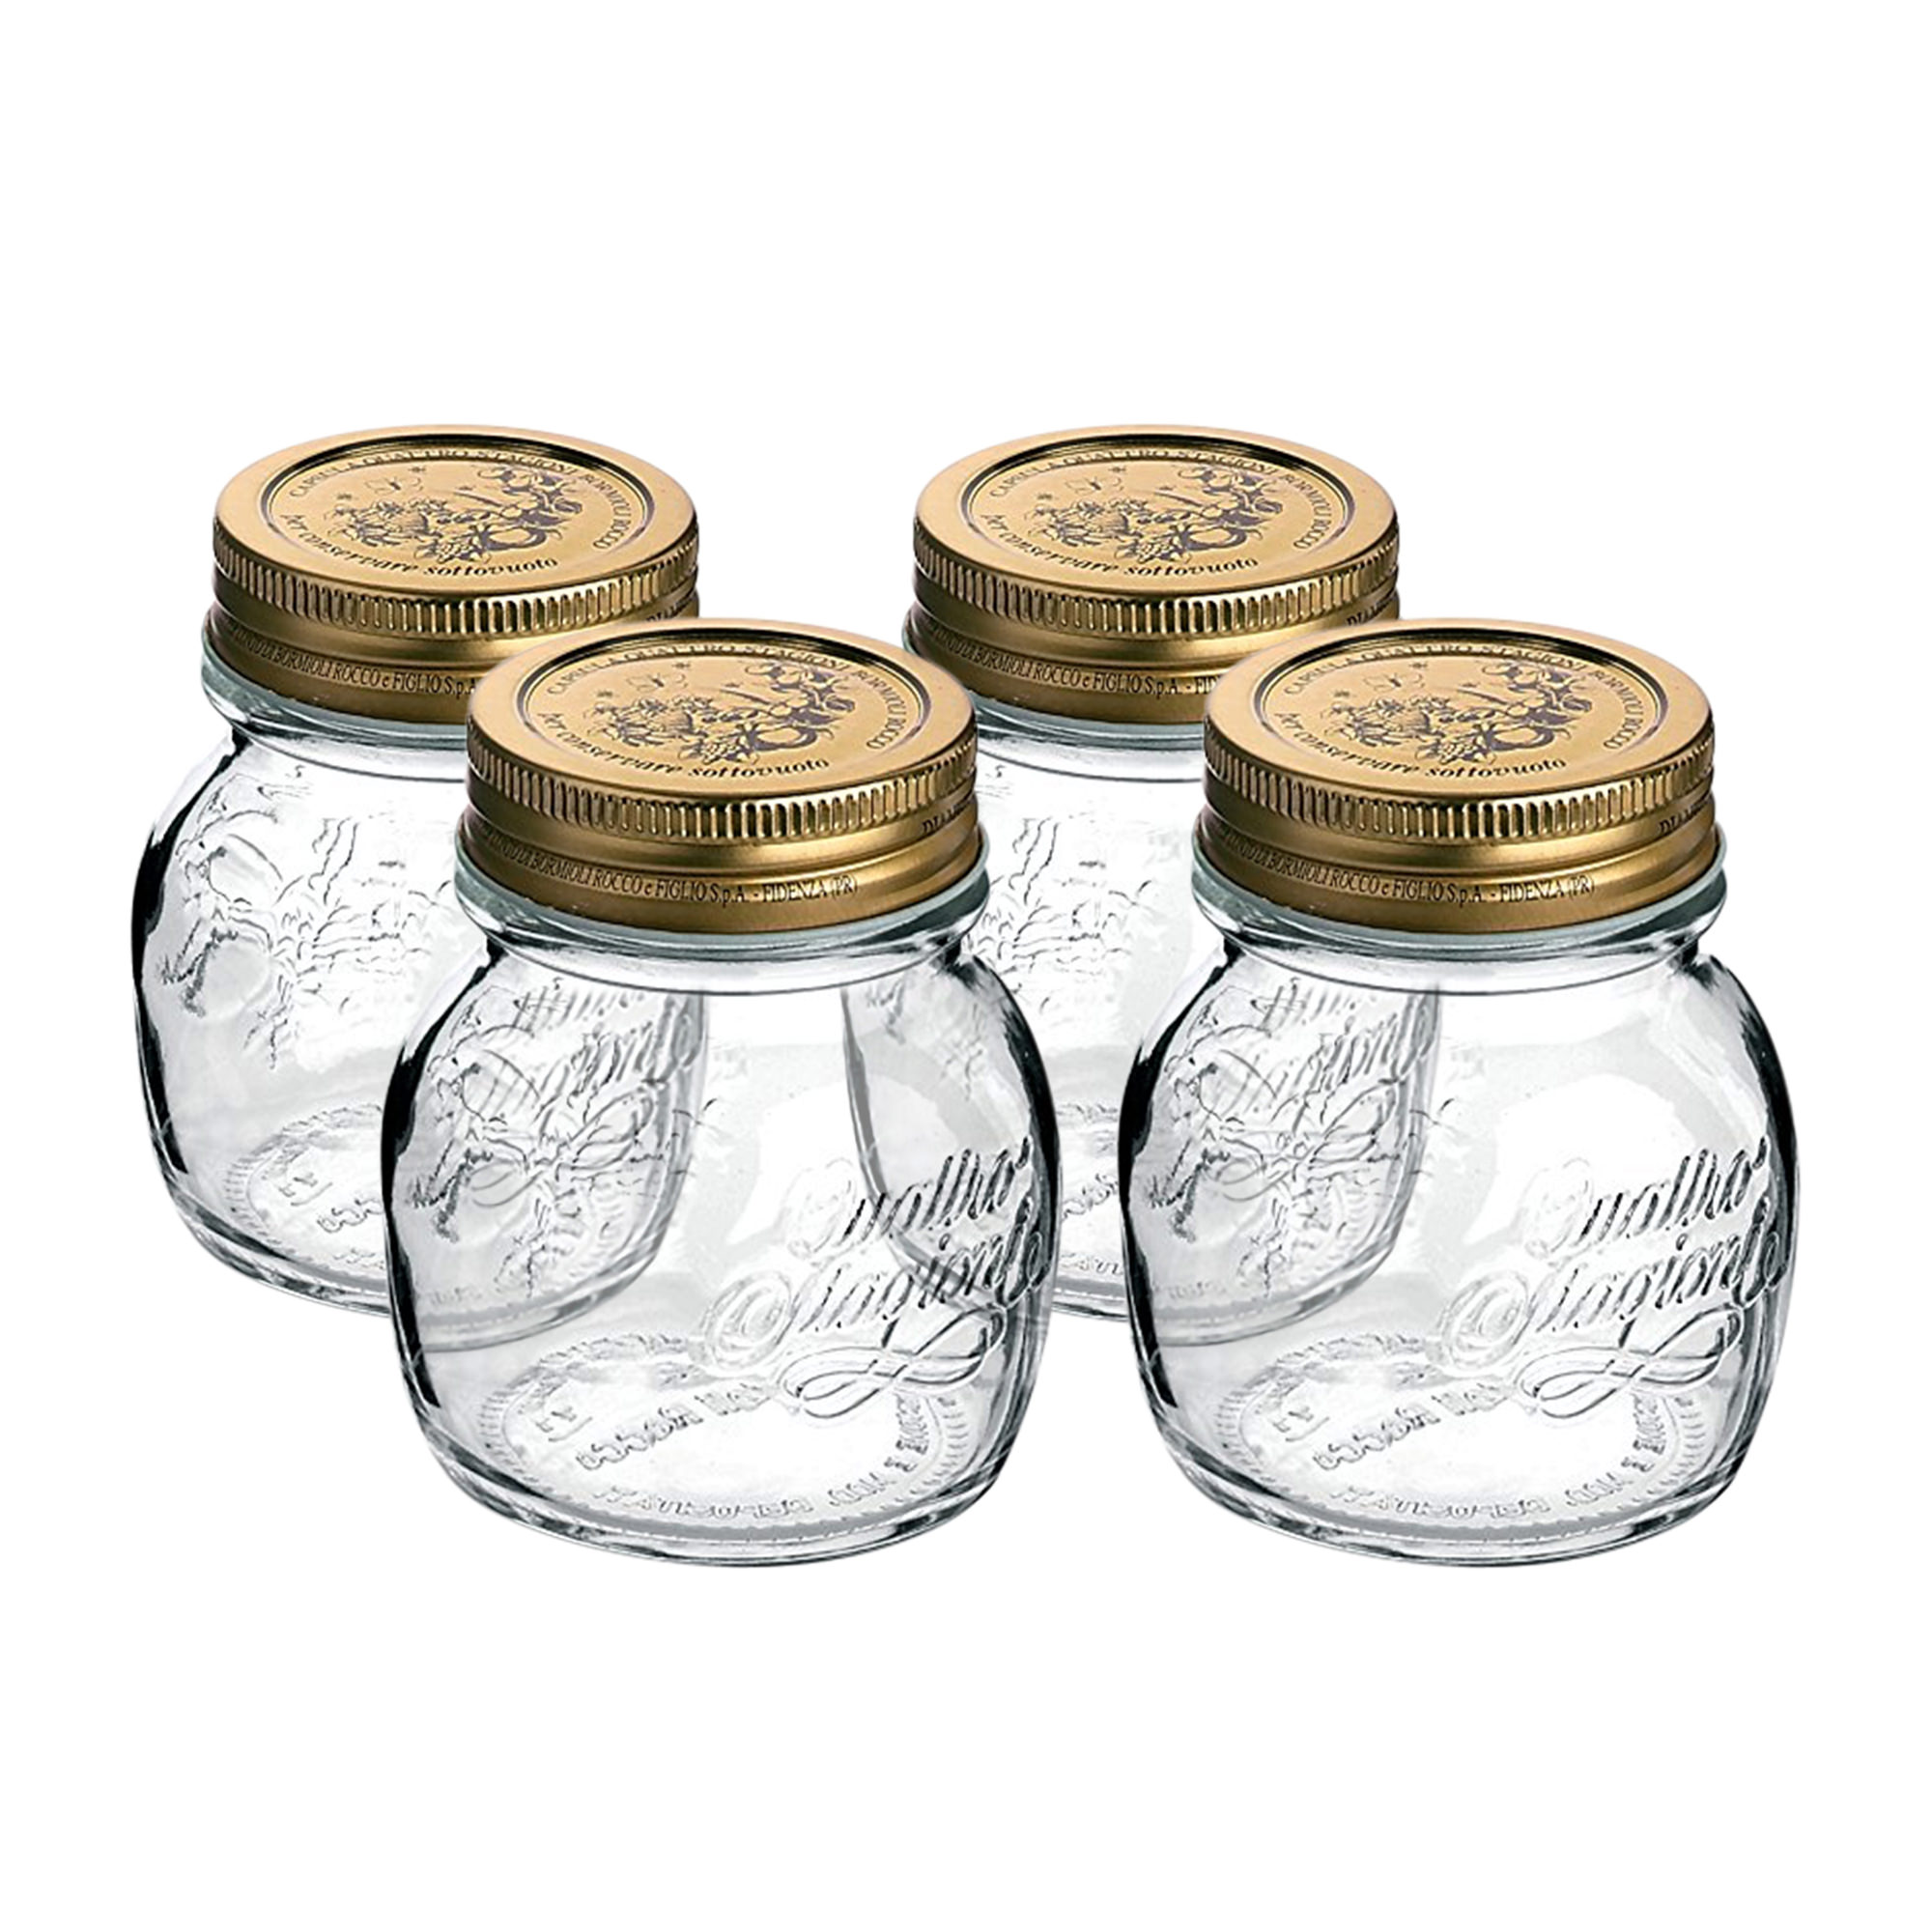 Bormioli Rocco Quattro Stagioni Storage Jars 250ml 4pc Set